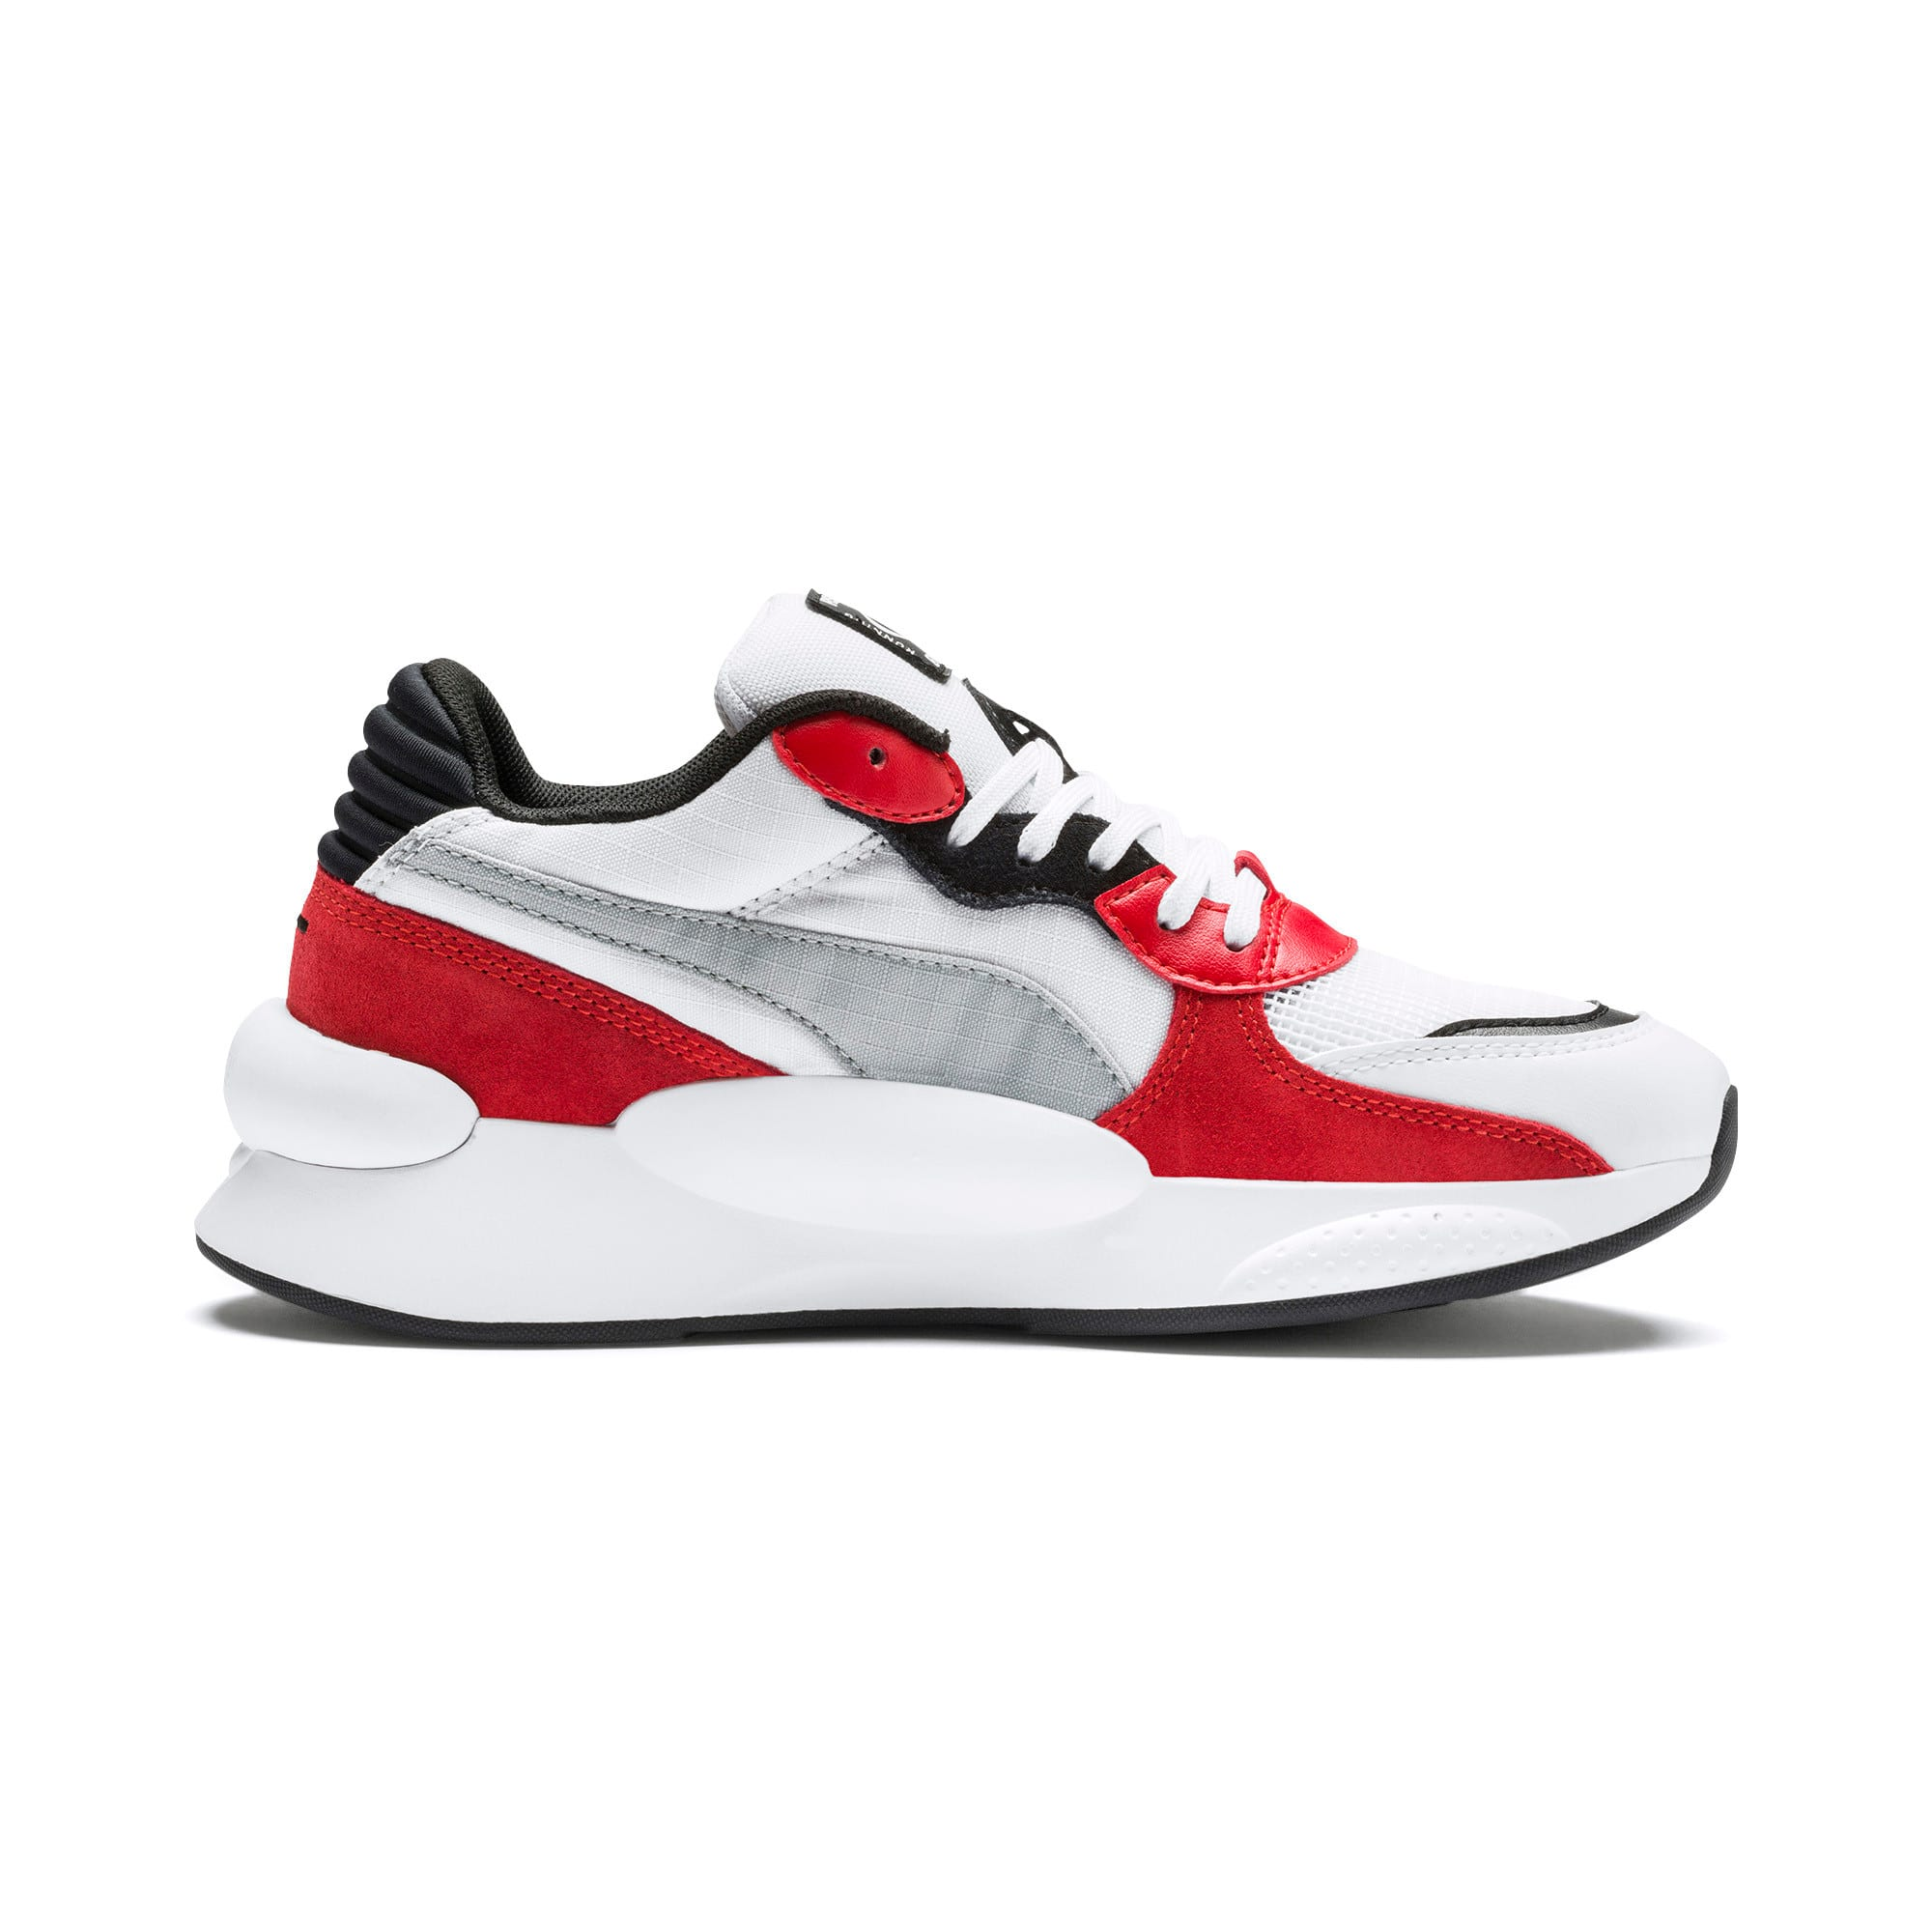 Thumbnail 5 of RS 9.8 Space Youth Sneaker, Puma White-High Risk Red, medium